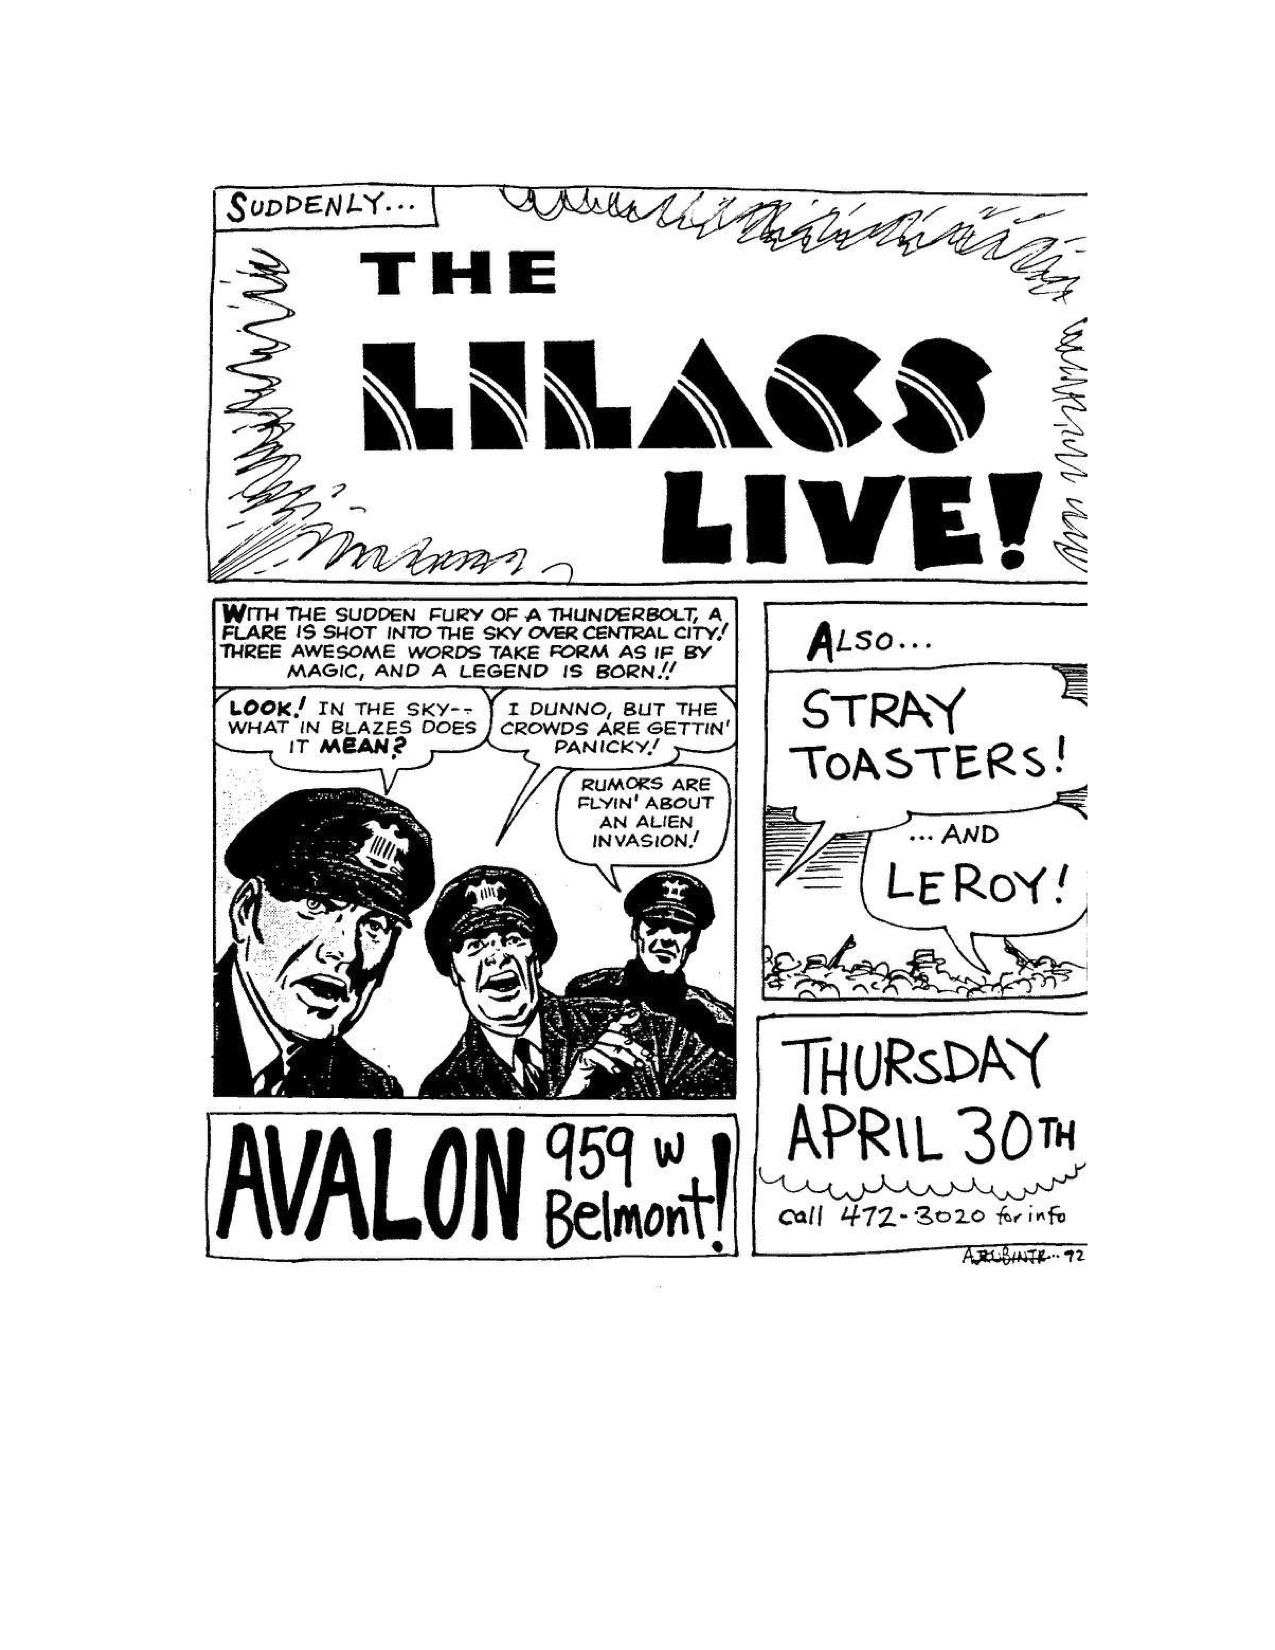 The Lilacs Poster 28 (Stray Toasters, LeRoy).jpg